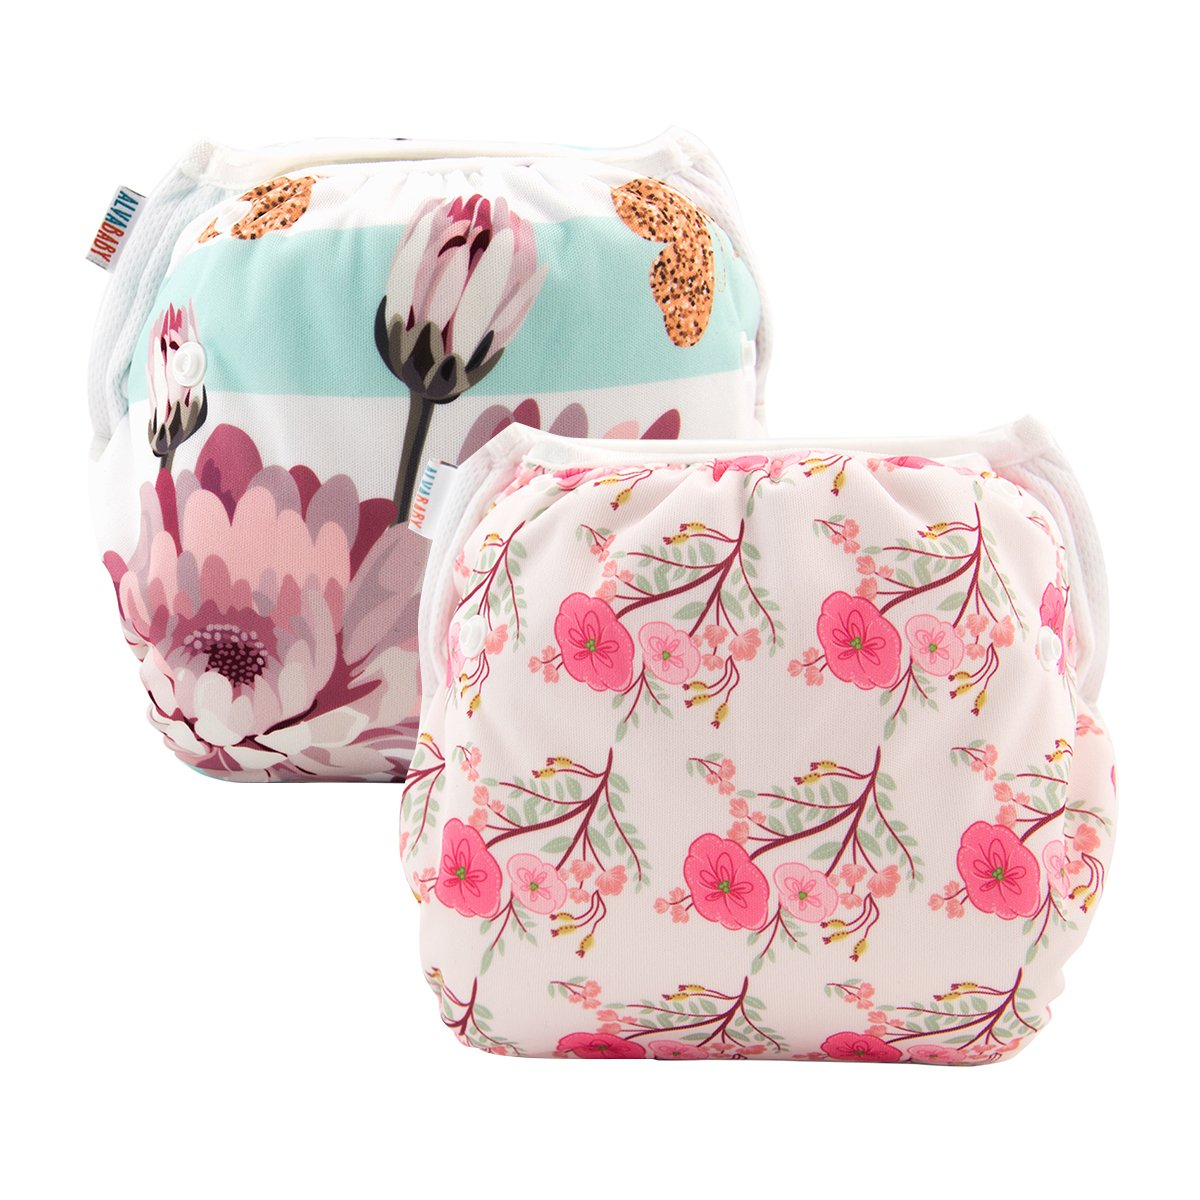 ALVABABY Swim Diapers Reuseable Adjustable One Size for Baby Gifts & Swimming Lessons (2PCS) (Flowers, 0-3 Years)